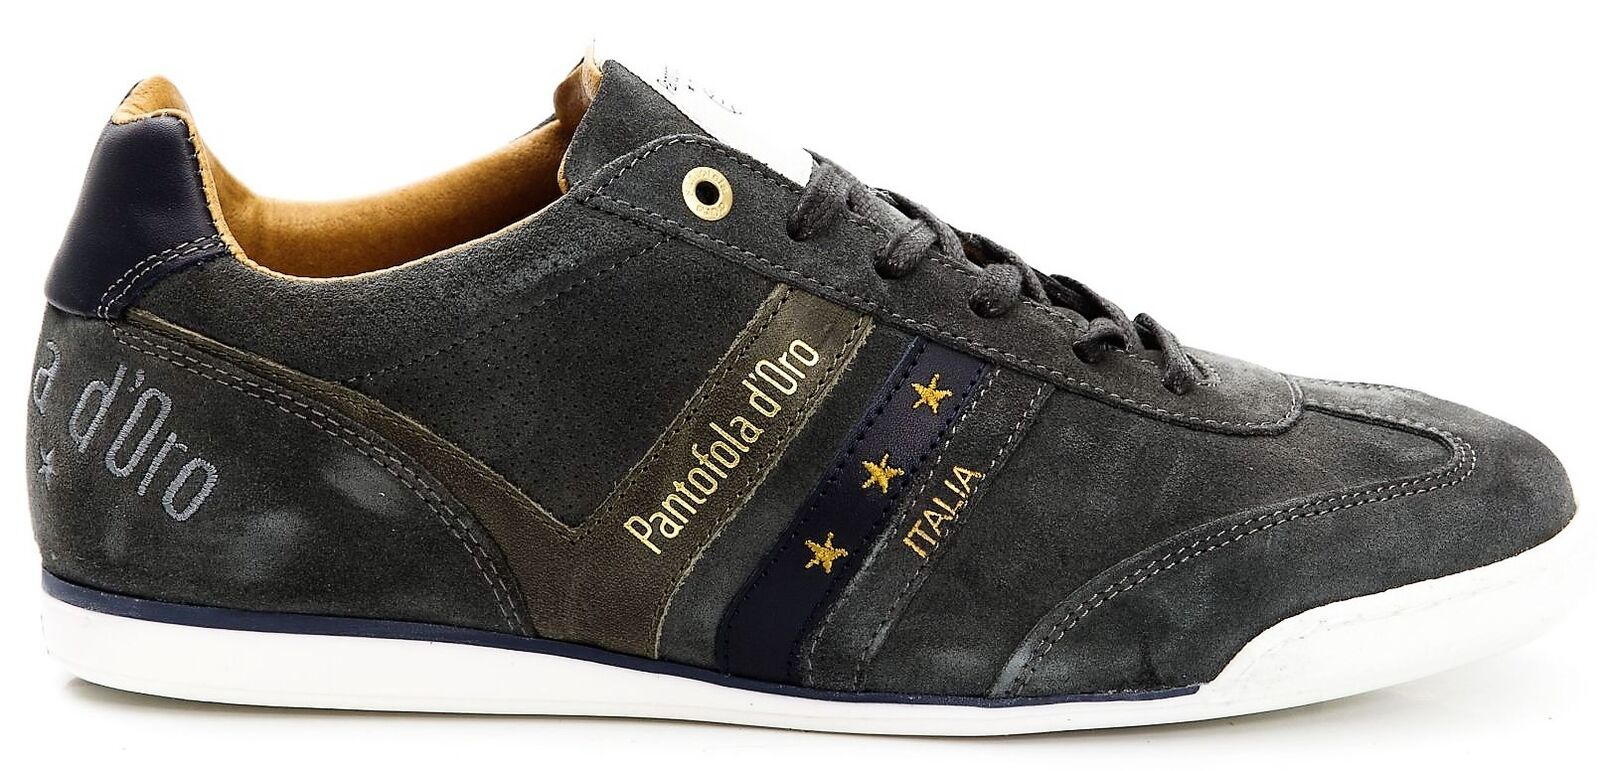 Leather Sneakers shoes Man Pantofola d'gold Men Extensive Suede Low 101